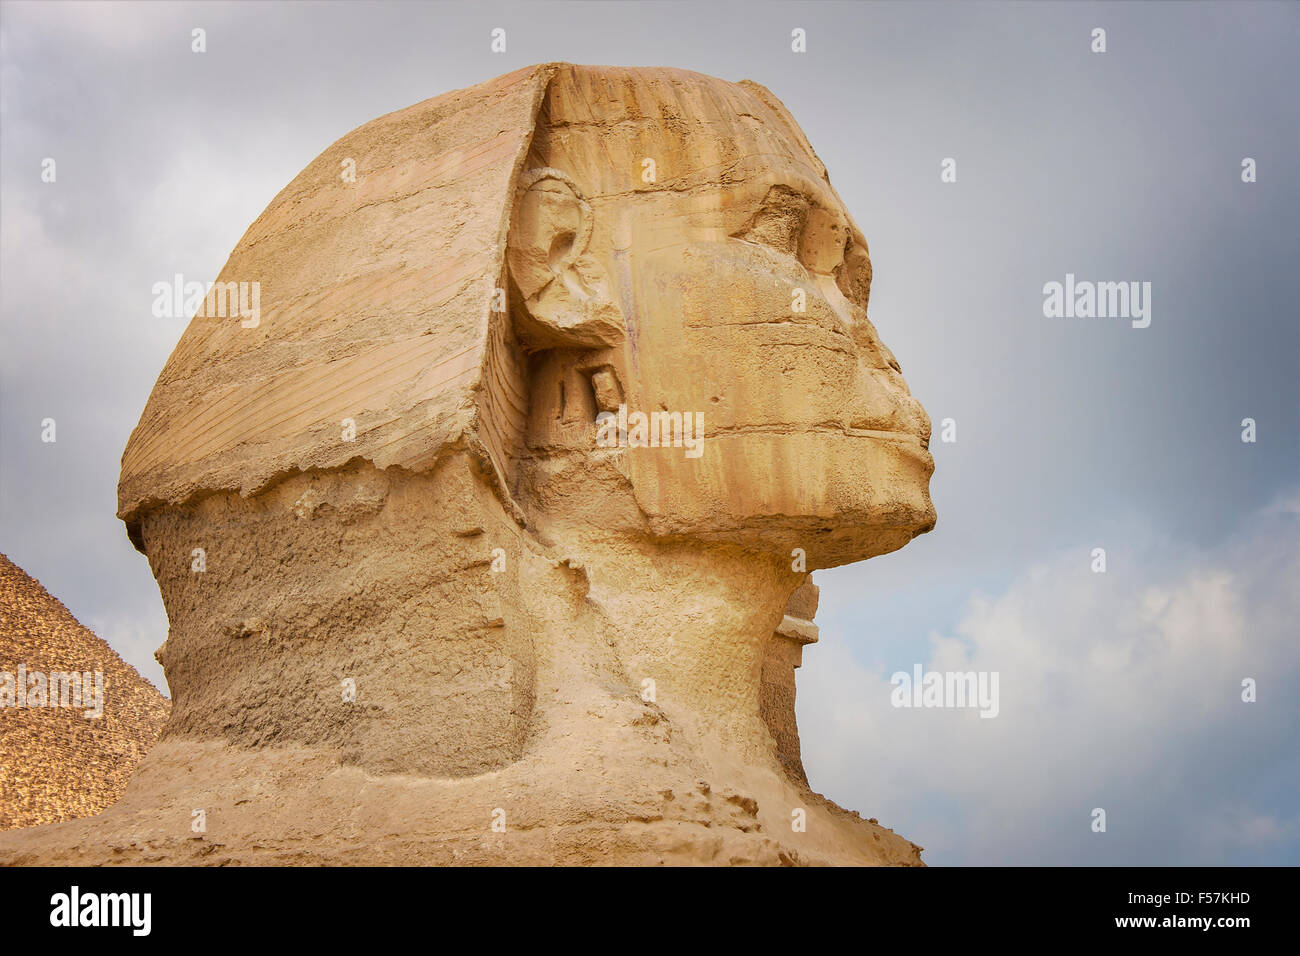 Image du sphinx de Gixa, Le Caire Égypte. Photo Stock